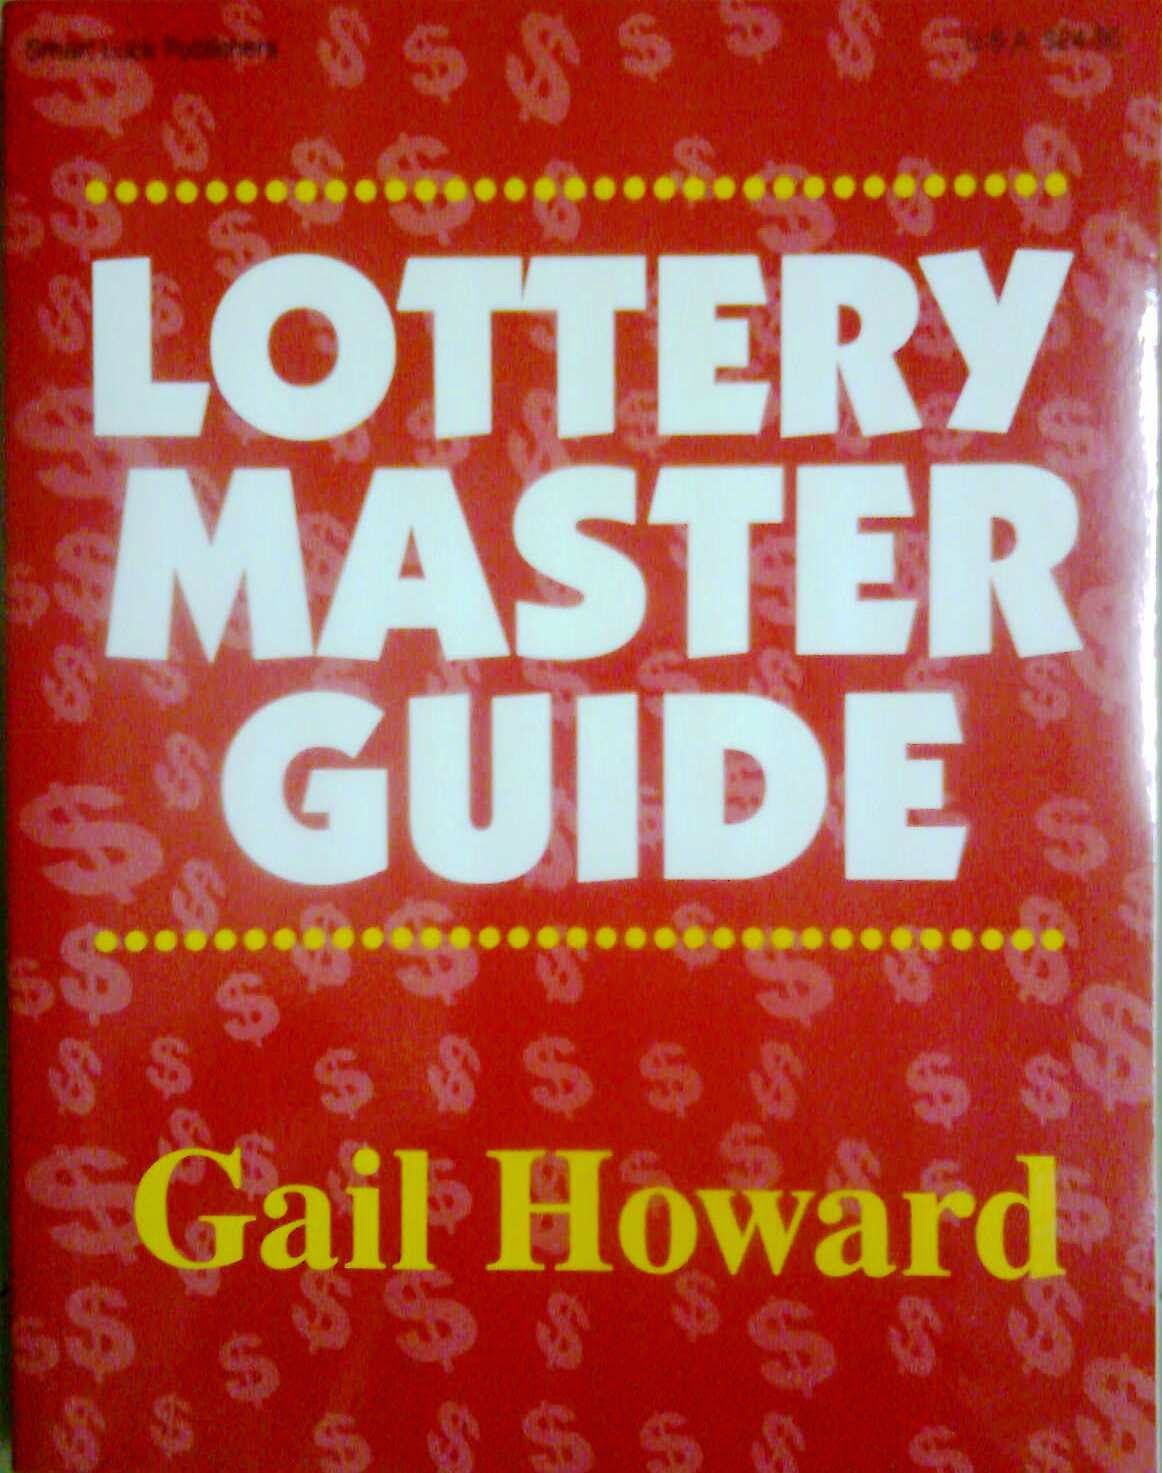 save my second hand stuff malaysia lottery master guide second rh savemysecondhandstuff blogspot com lottery master guide book lottery master guide book